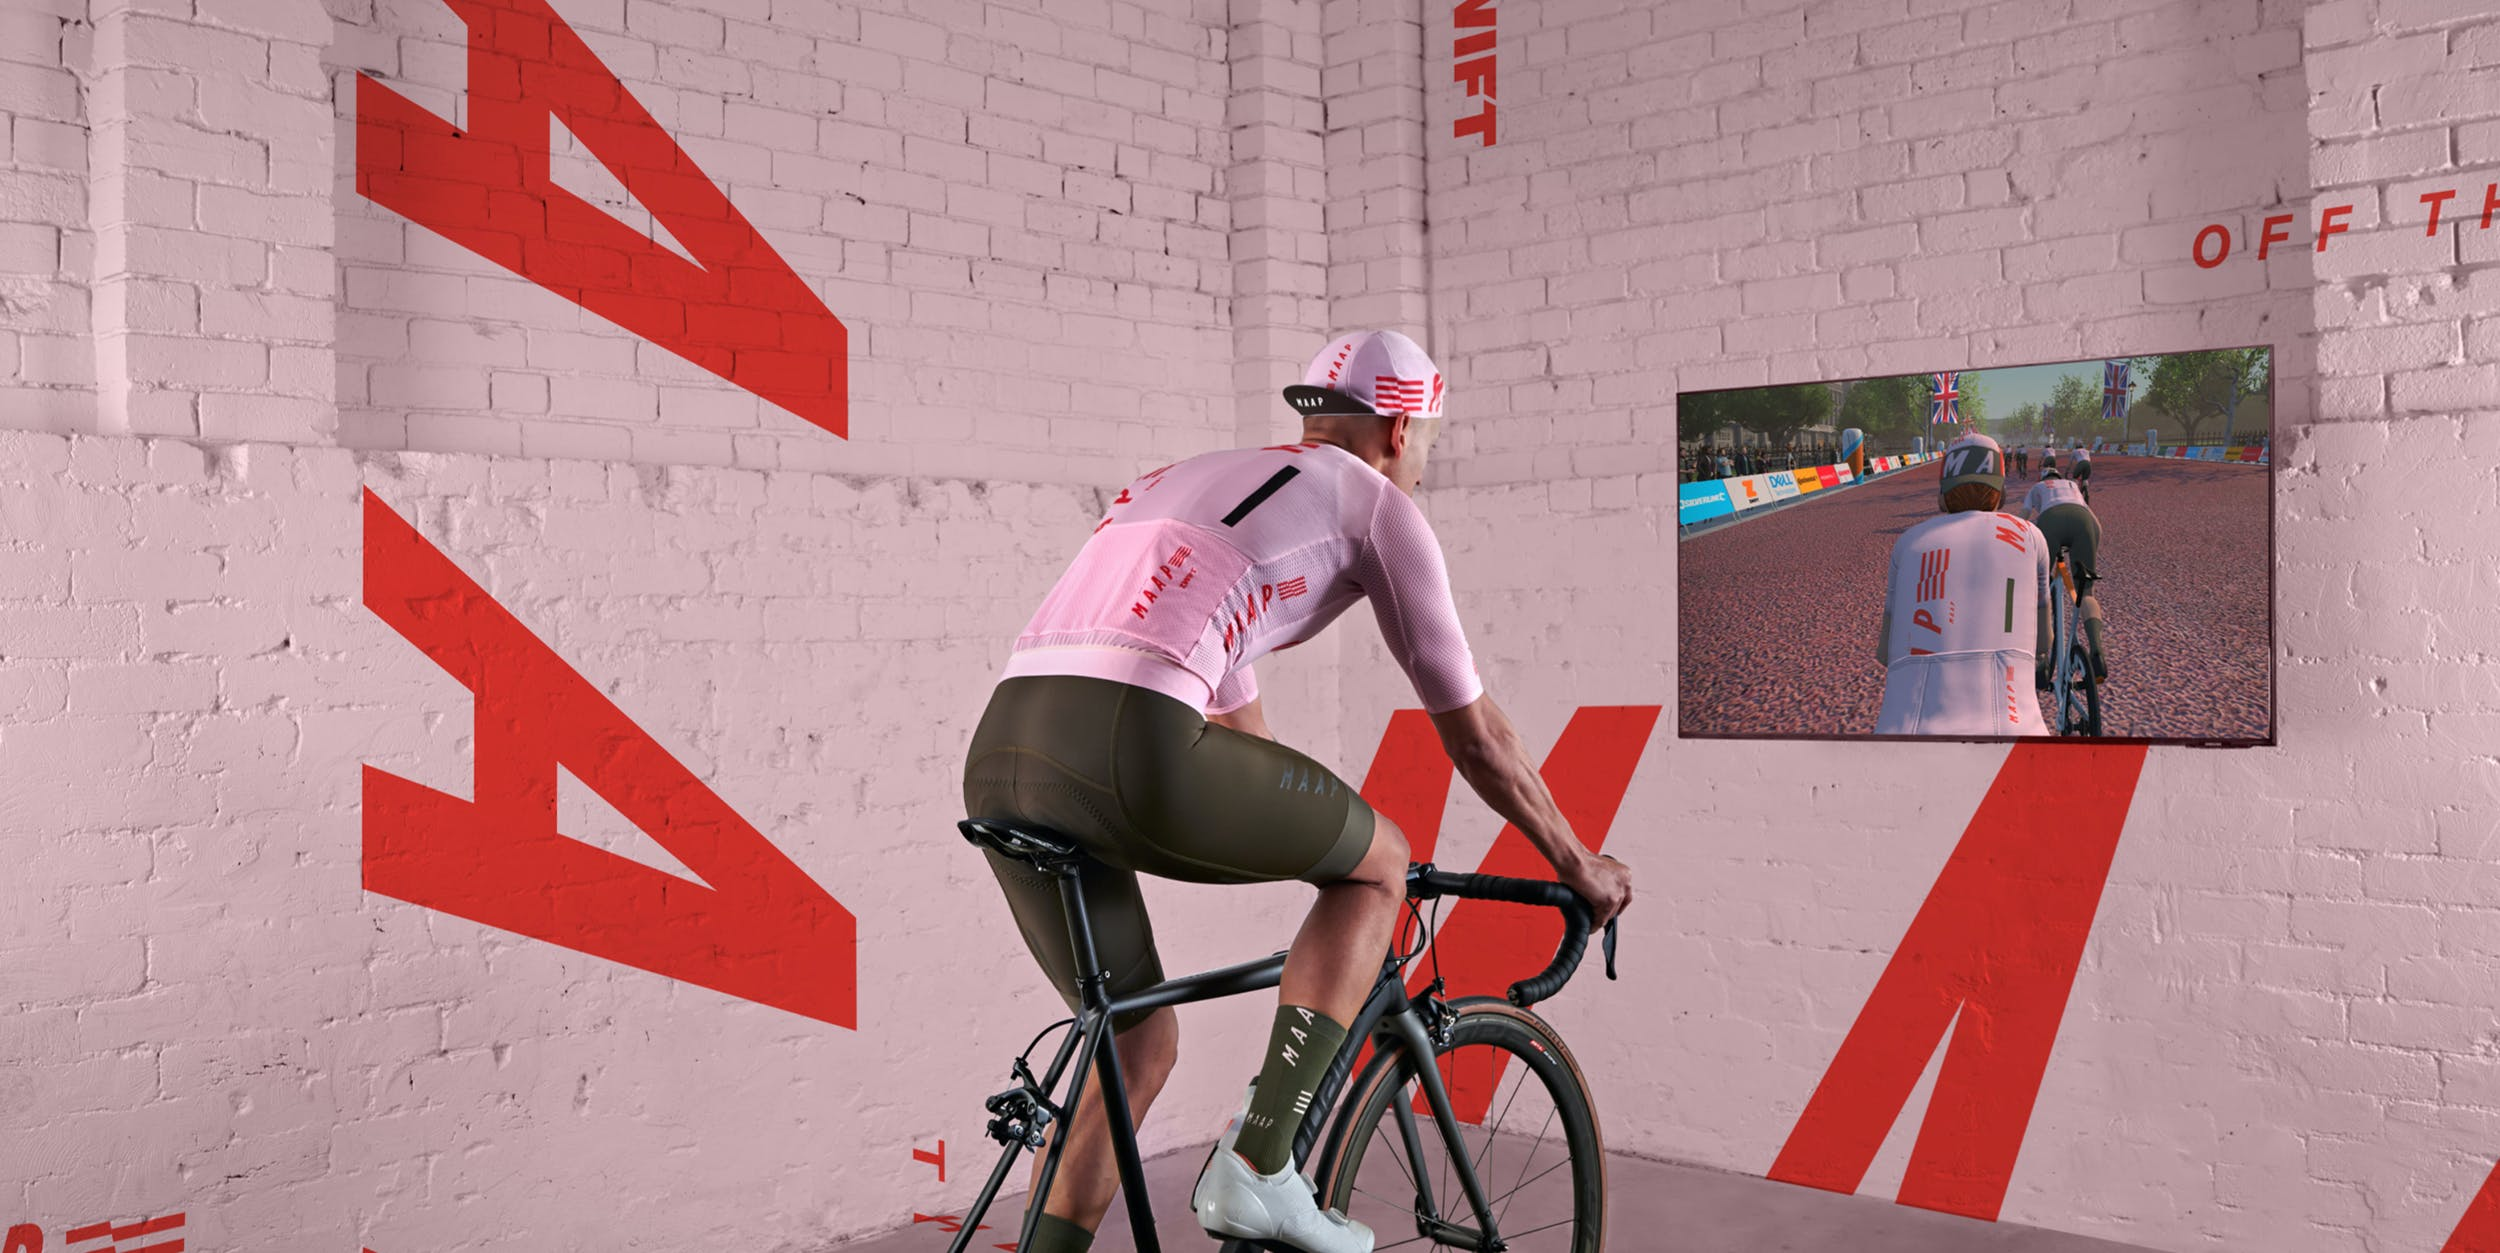 OFF THE^MAAP TOUR^ON ZWIFT